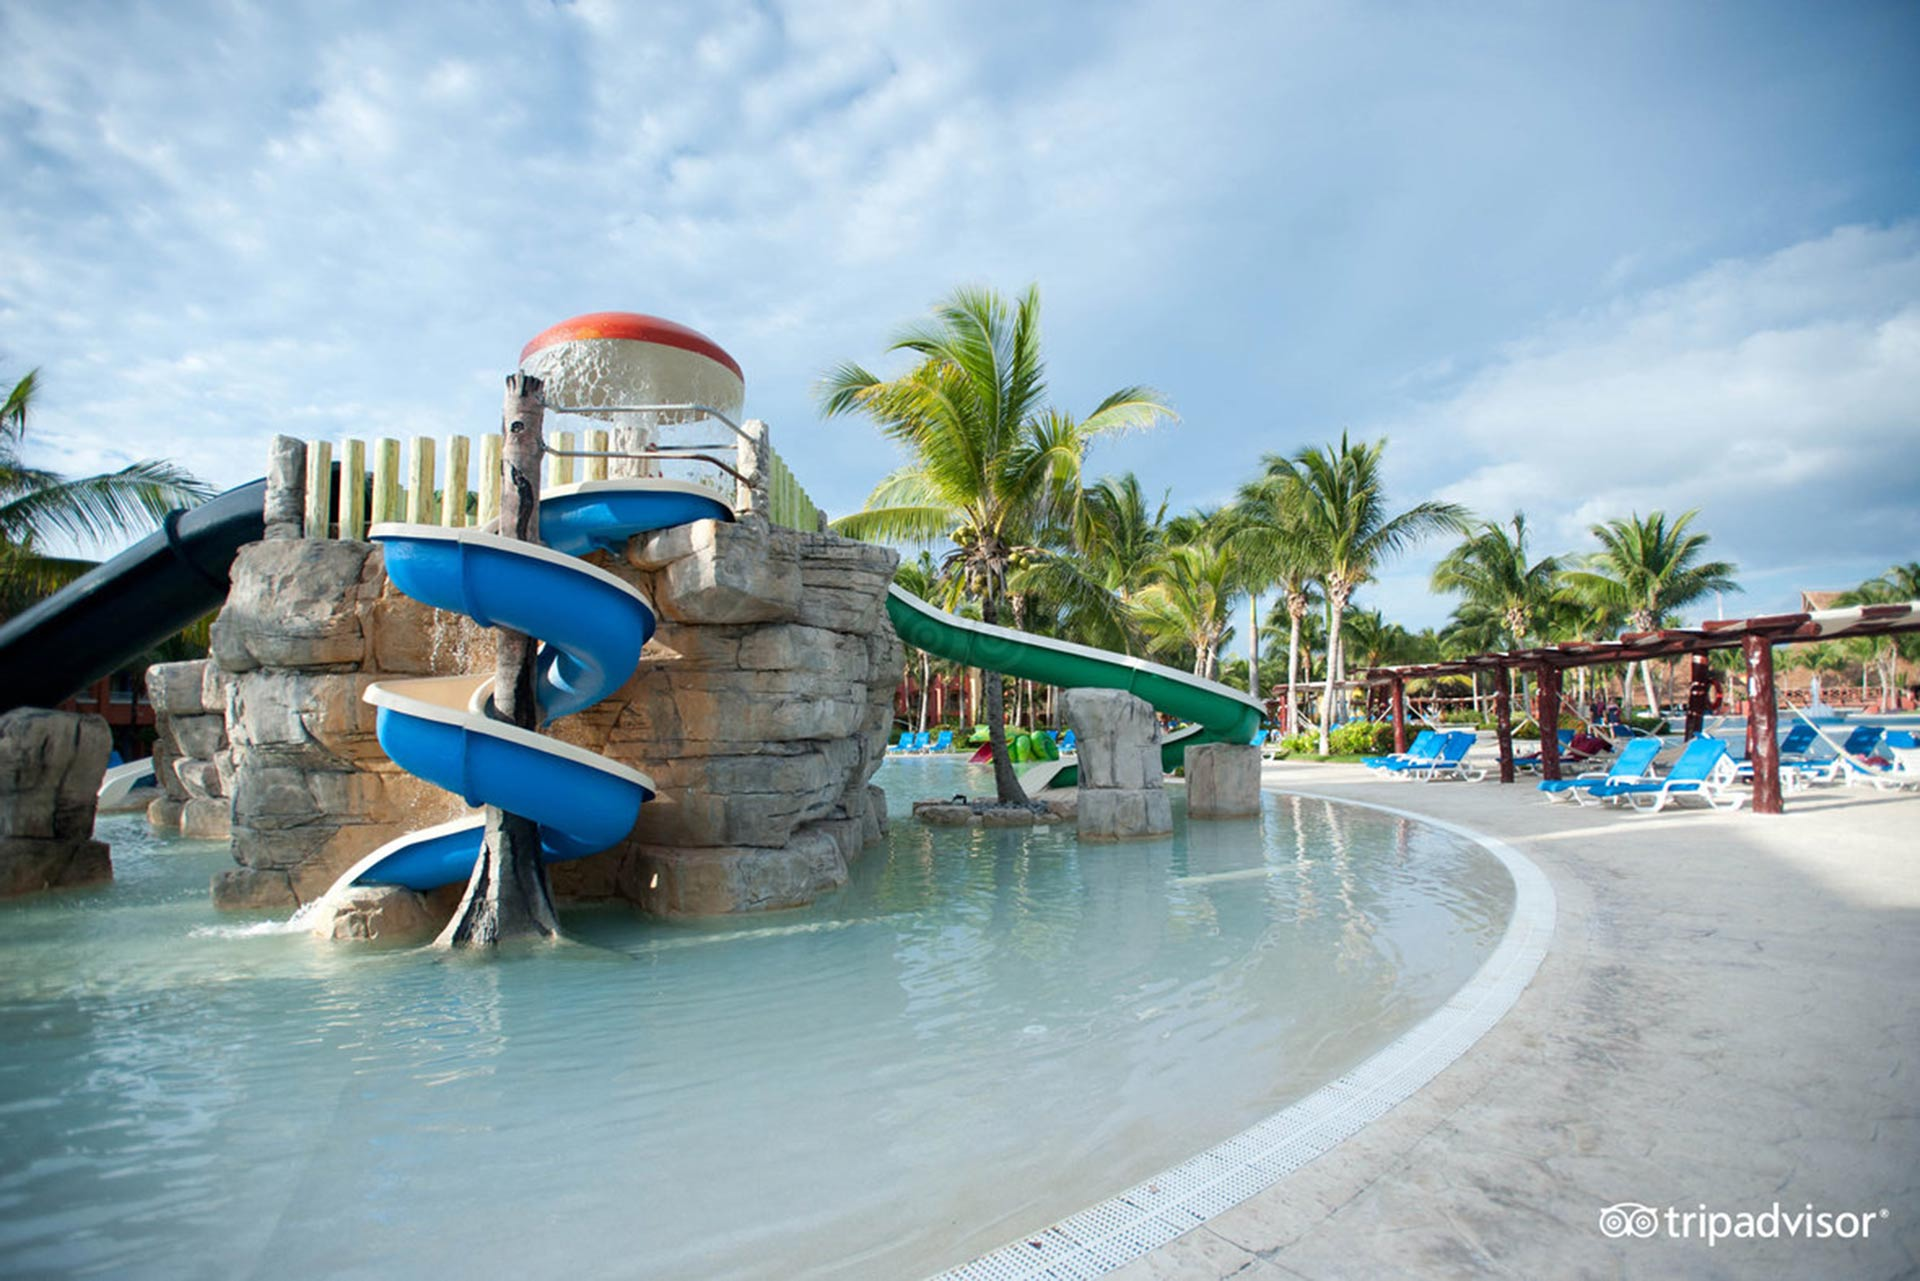 The Kiddy Pool at the Barcelo Maya Colonial; TripAdvisor Expert Photo